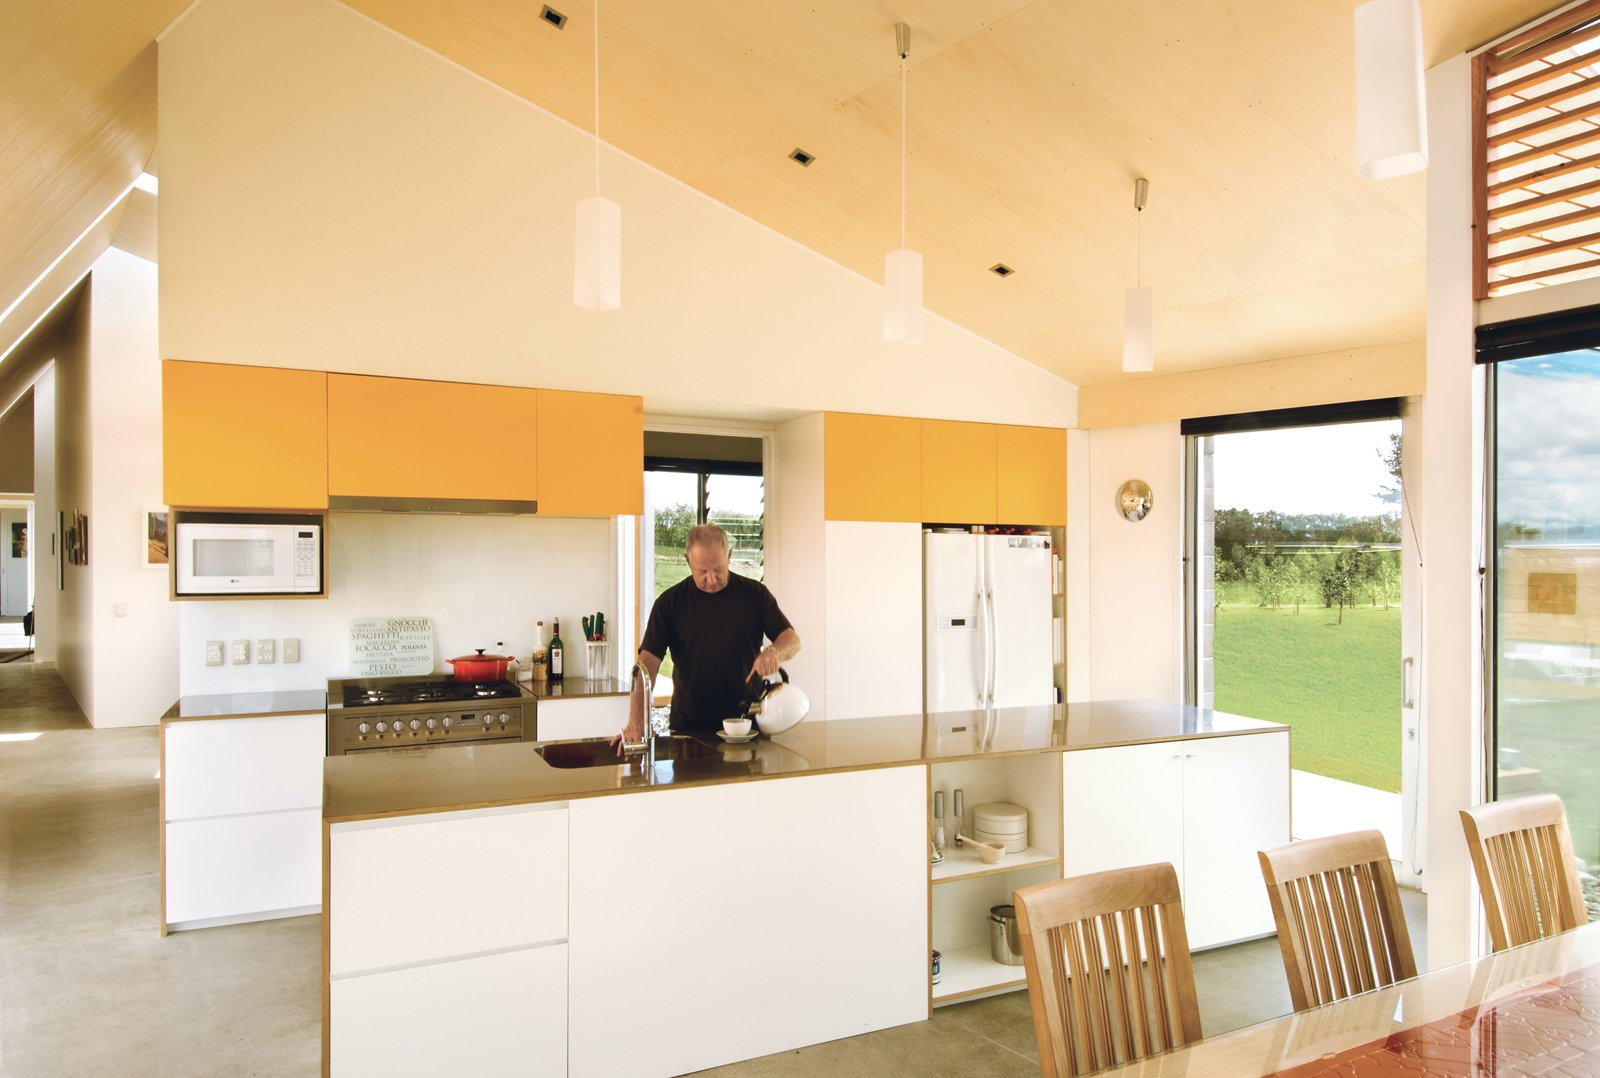 Ted Preston takes charge of hot beverages in the kitchen. The architects diligently avoided cold, hard minimalism with a honey-tinged Italian poplar ceiling.